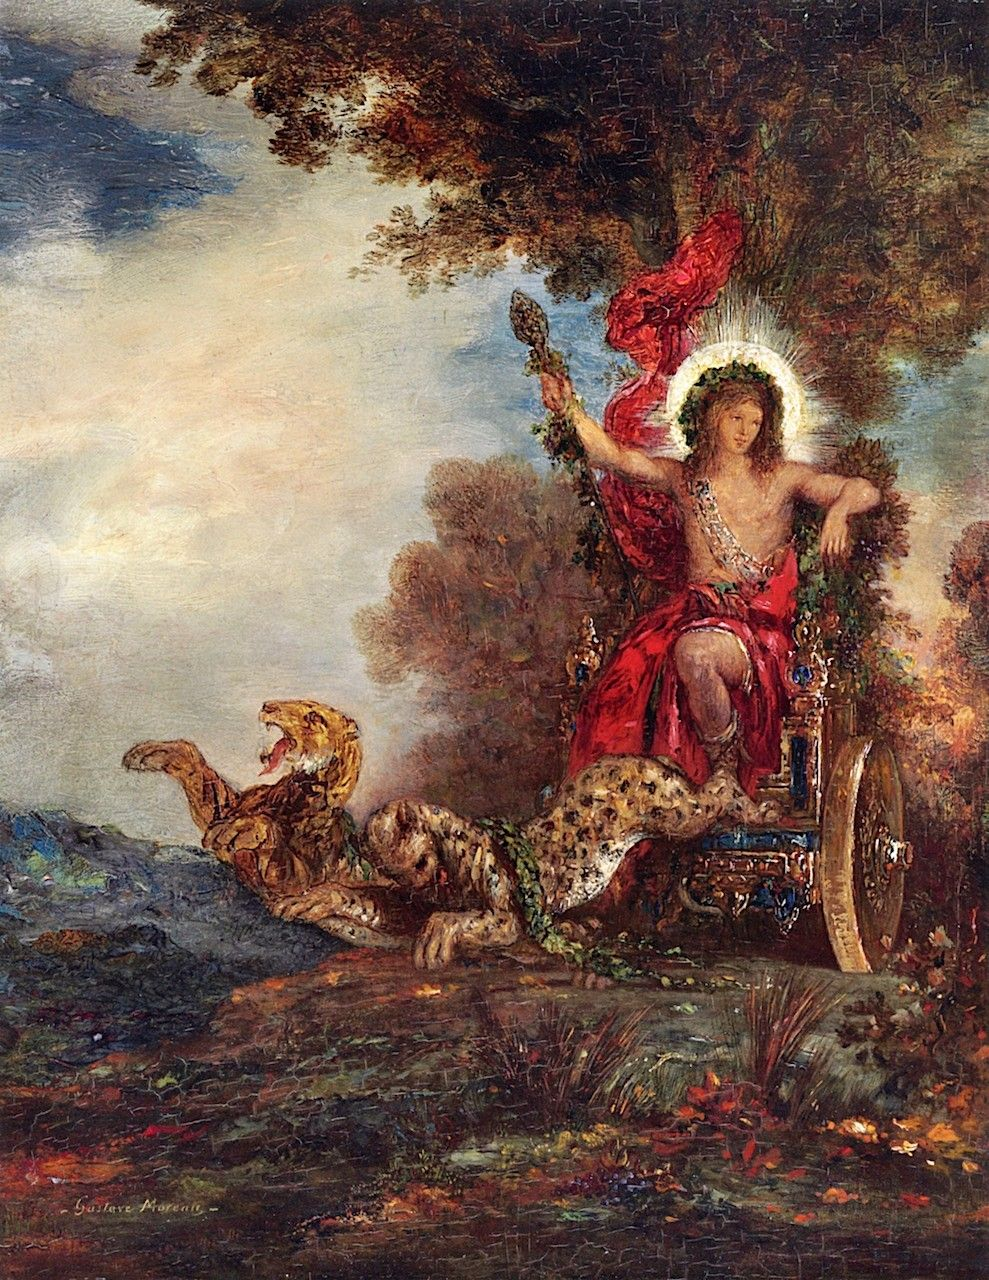 Pin By Sally On Dionysus In 2020 Art Bacchus Greek Gods And Goddesses